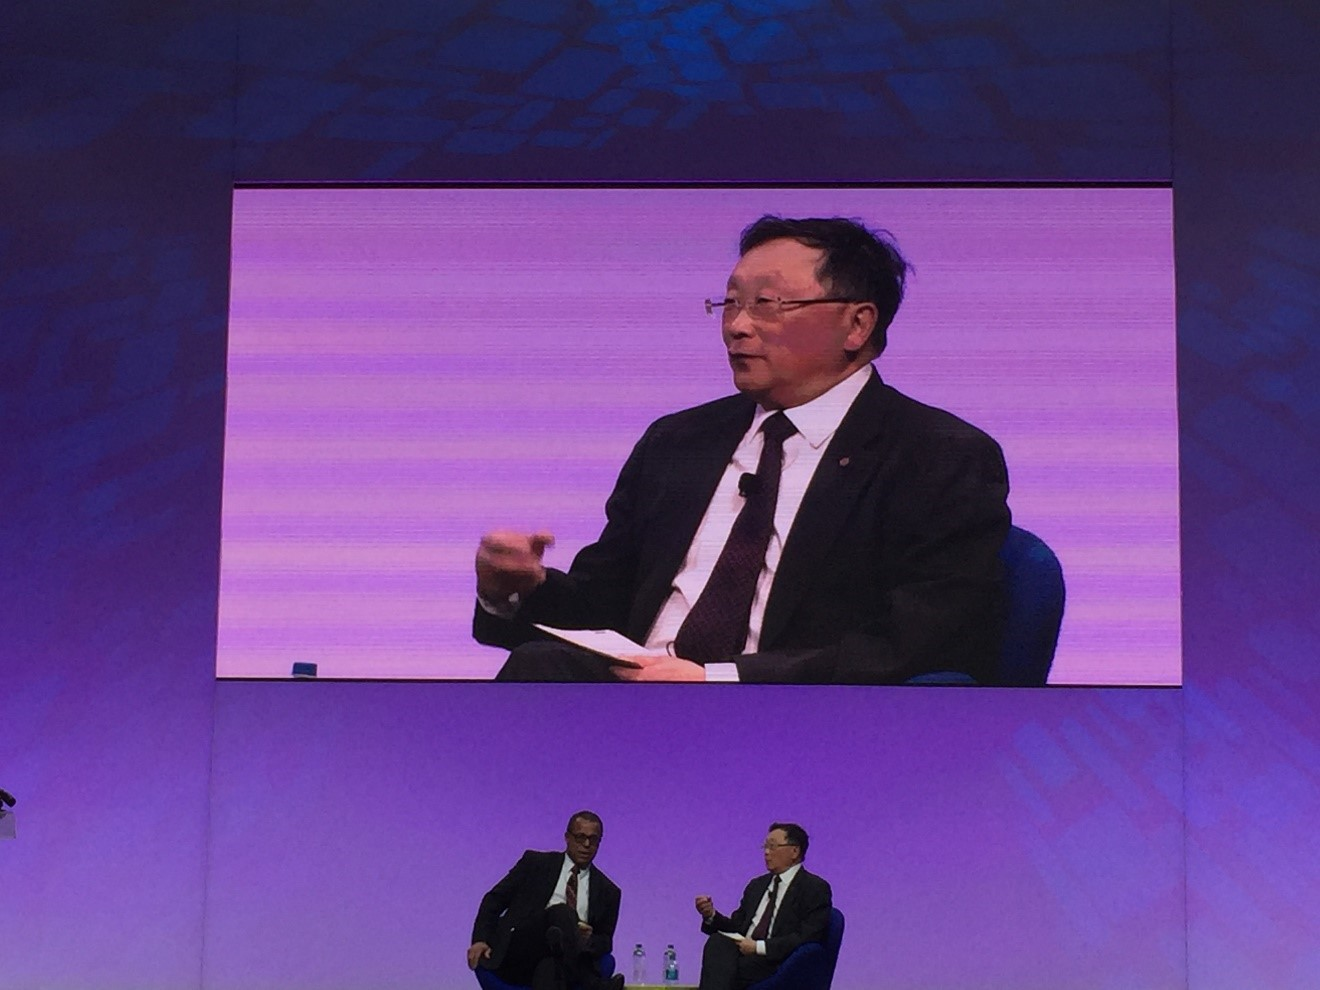 Mr. John S. Chen, CEO of Blackberry.